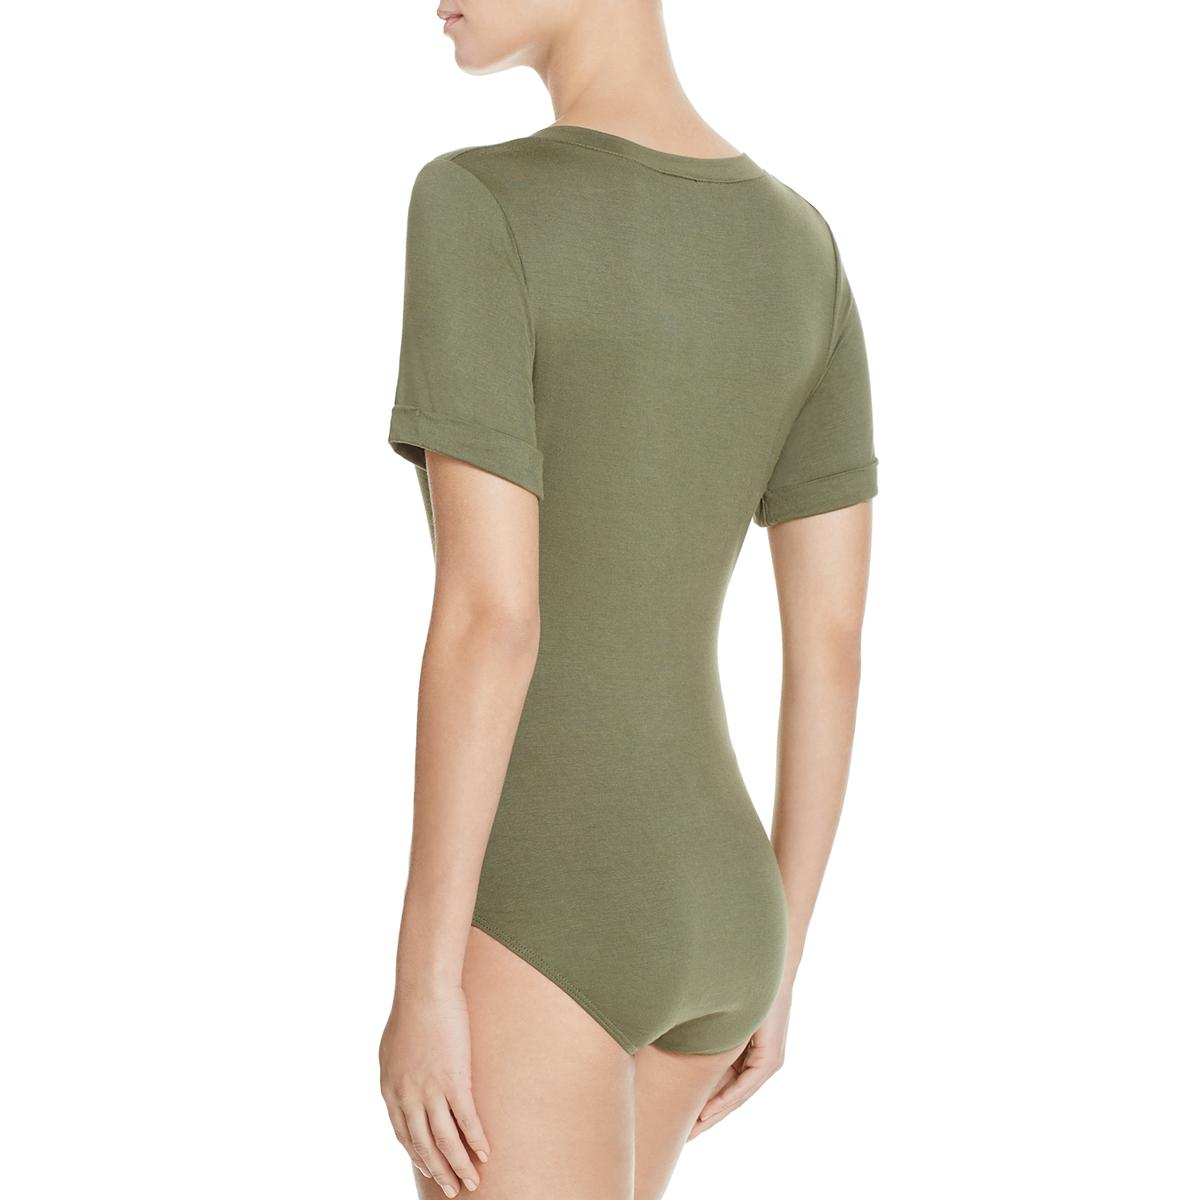 Intimately-Free-People-Womens-Me-Oh-My-Leotard-Everyday-Bodysuit-Top-BHFO-6880